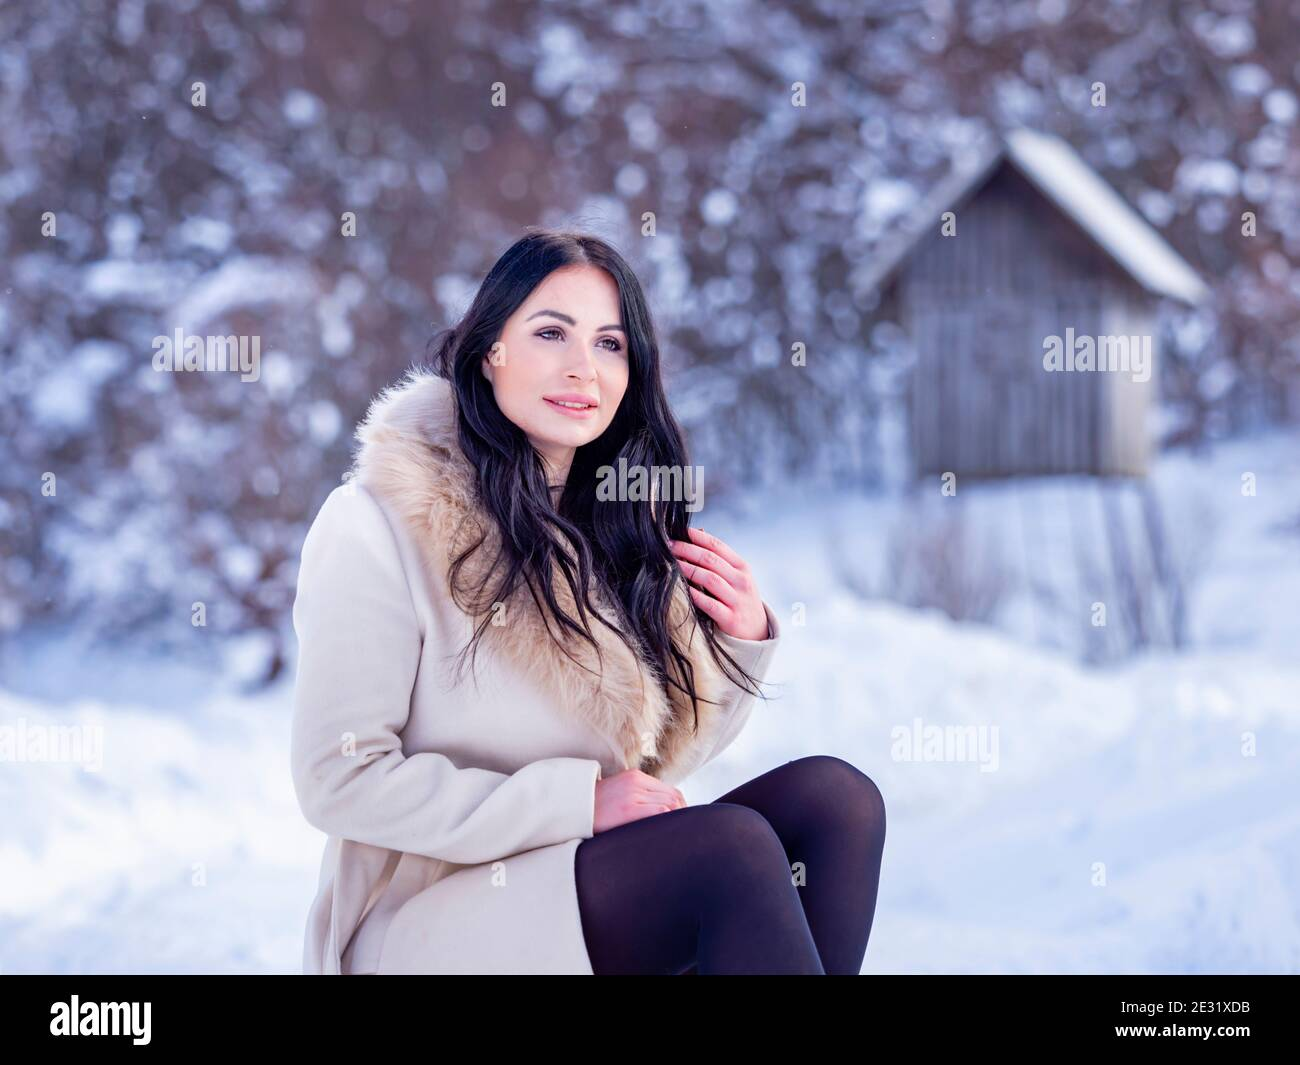 Young woman in nature countryside snow during Winter season daydreaming looking away serious wait waiting dreamy exposed exposing knees legs Stock Photo